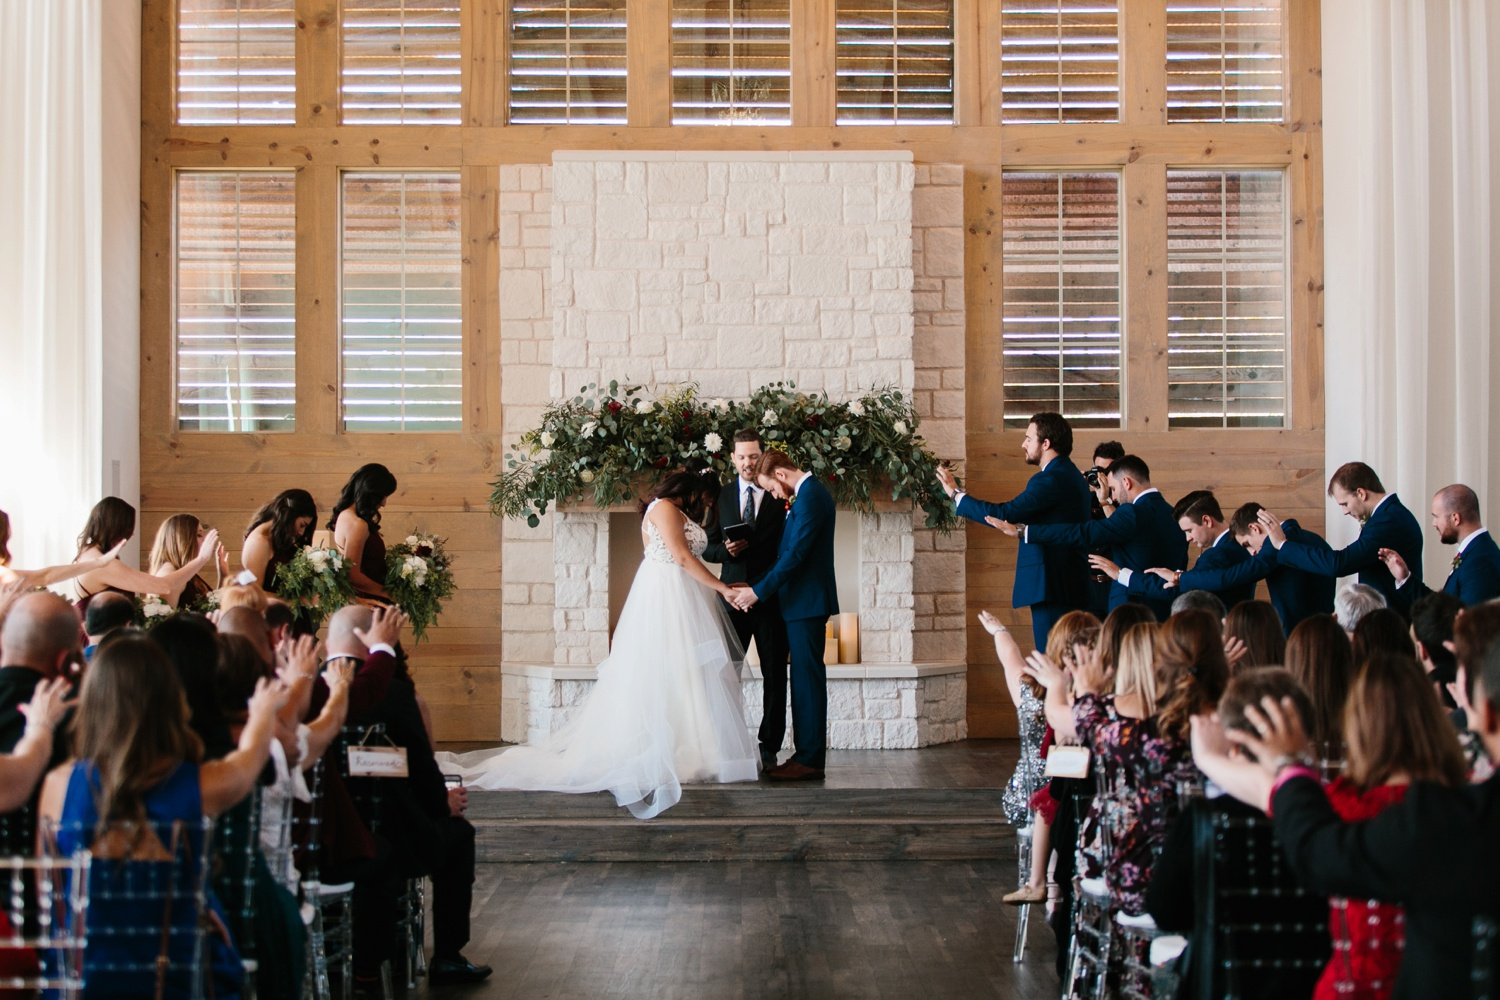 Grant + Lysette | a vibrant, deep burgundy and navy, and mixed metals wedding at Hidden Pines Chapel by North Texas Wedding Photographer Rachel Meagan Photography 104